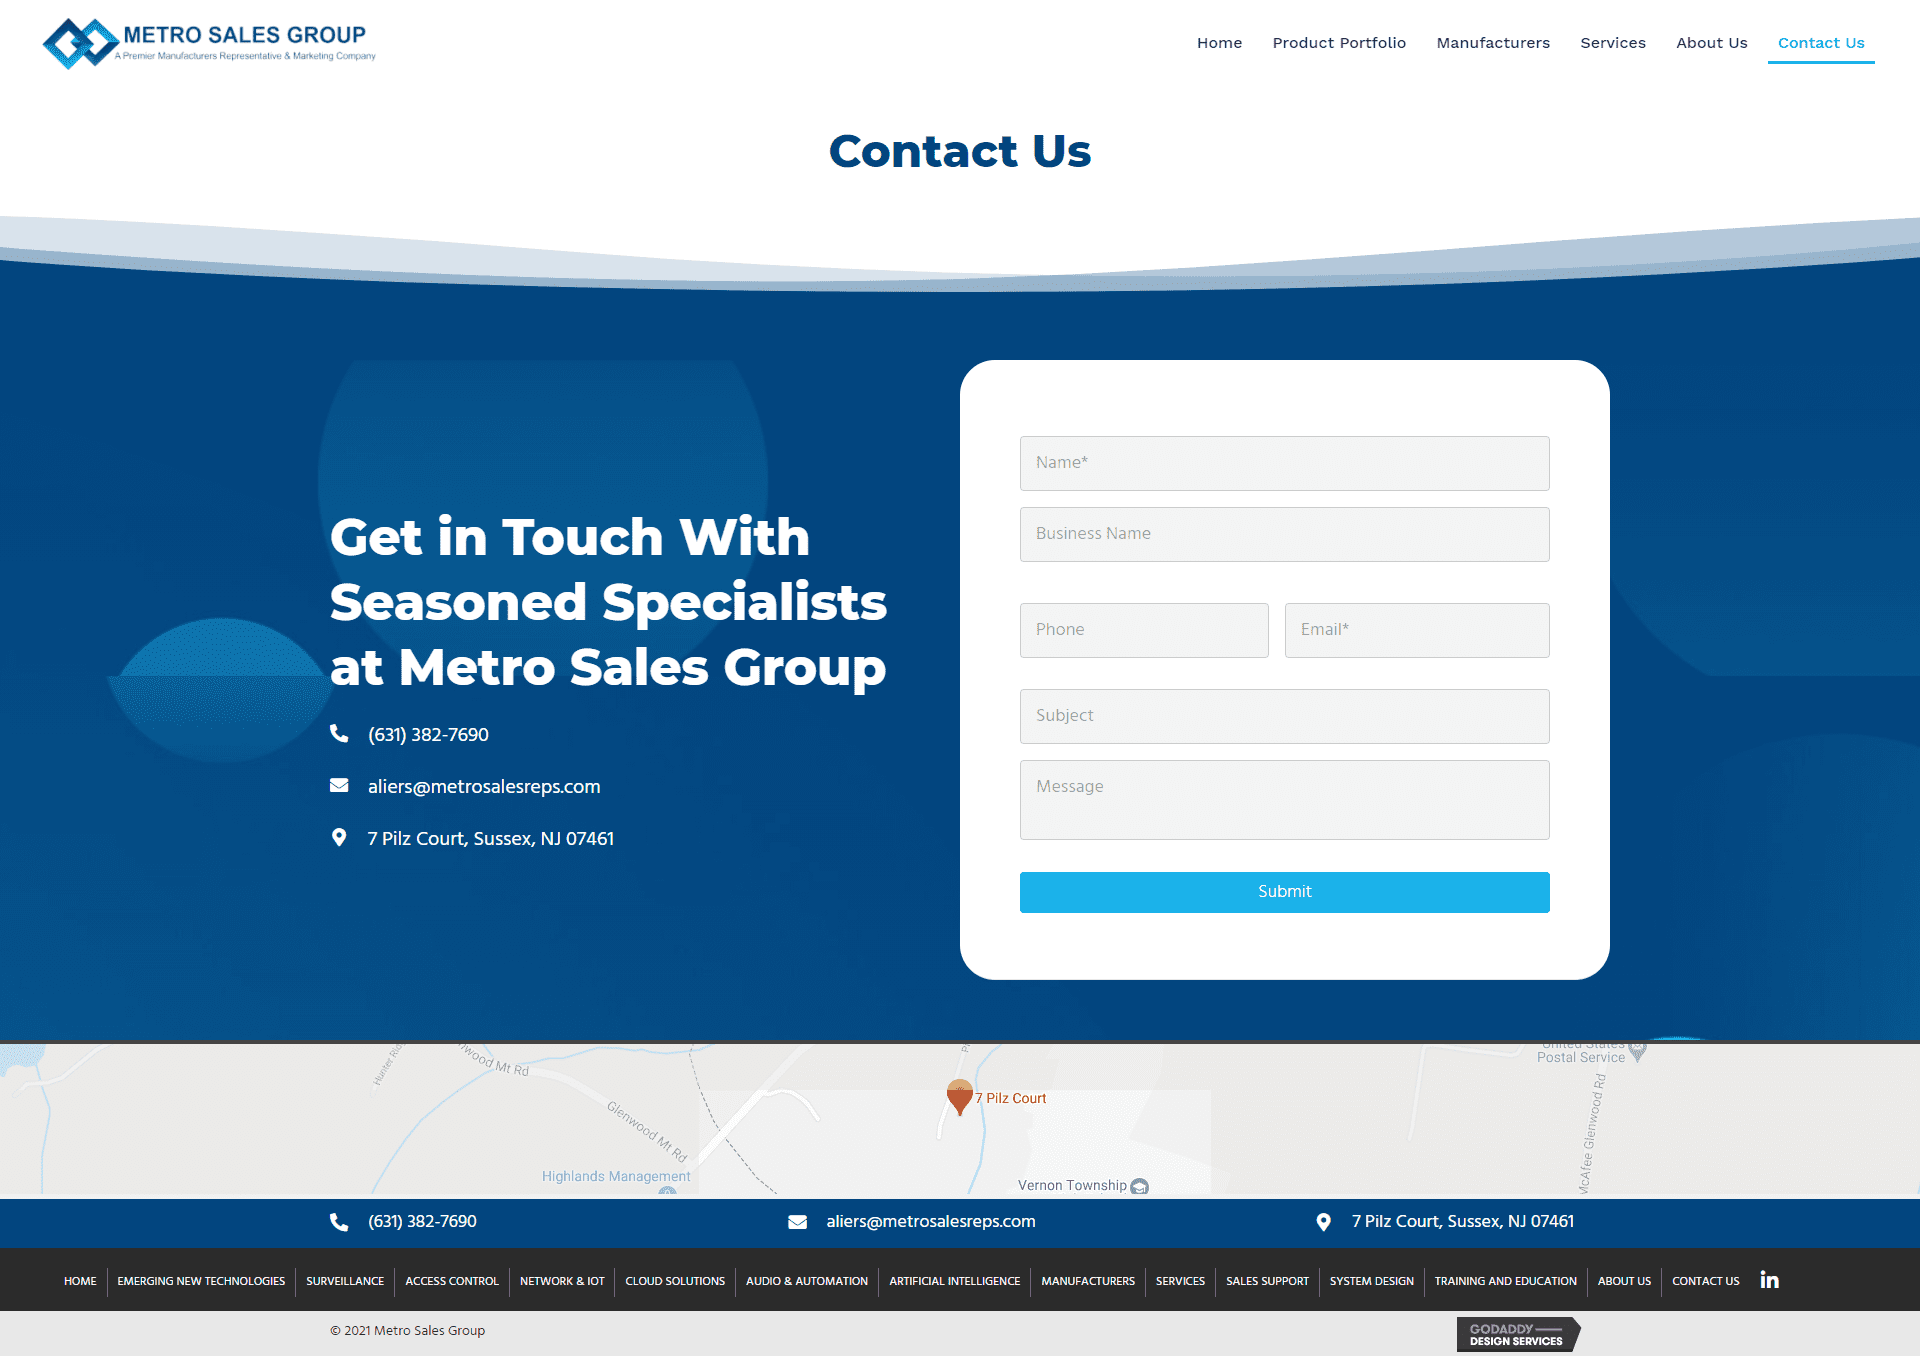 Metro Sales Group Contact